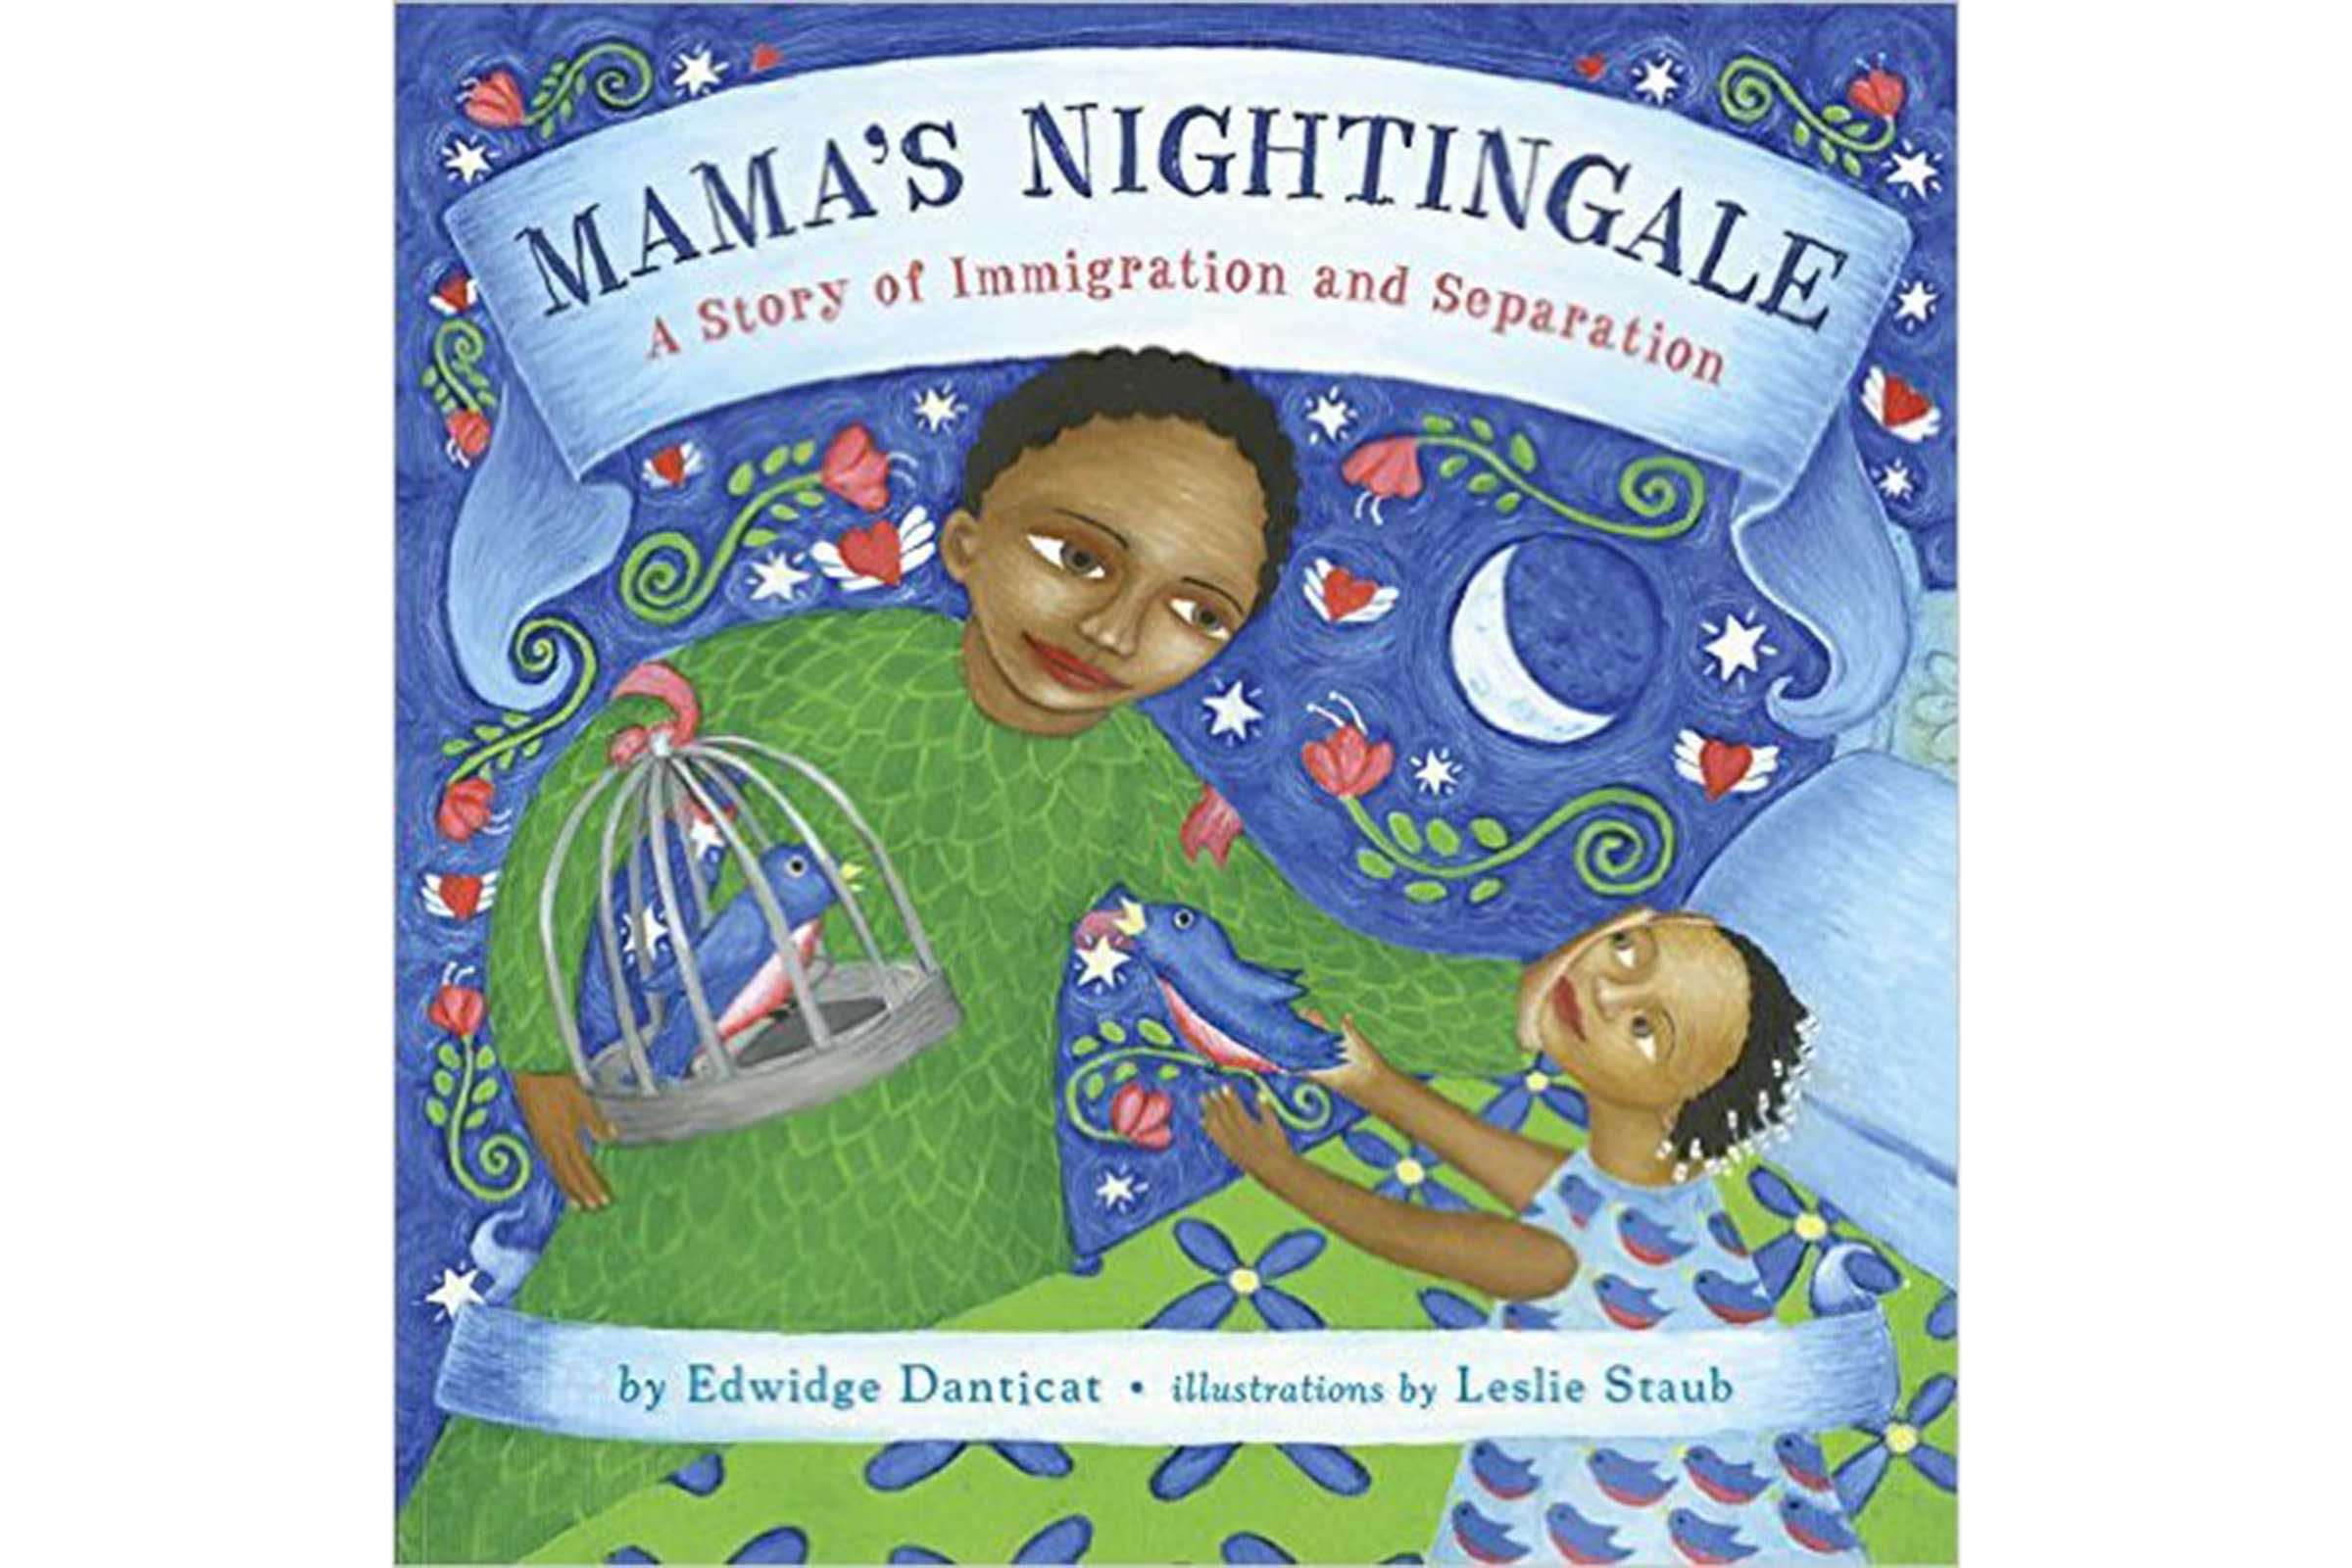 'Mama's Nightingale: A Story of Immigration and Separation' by Edwidge Danticat